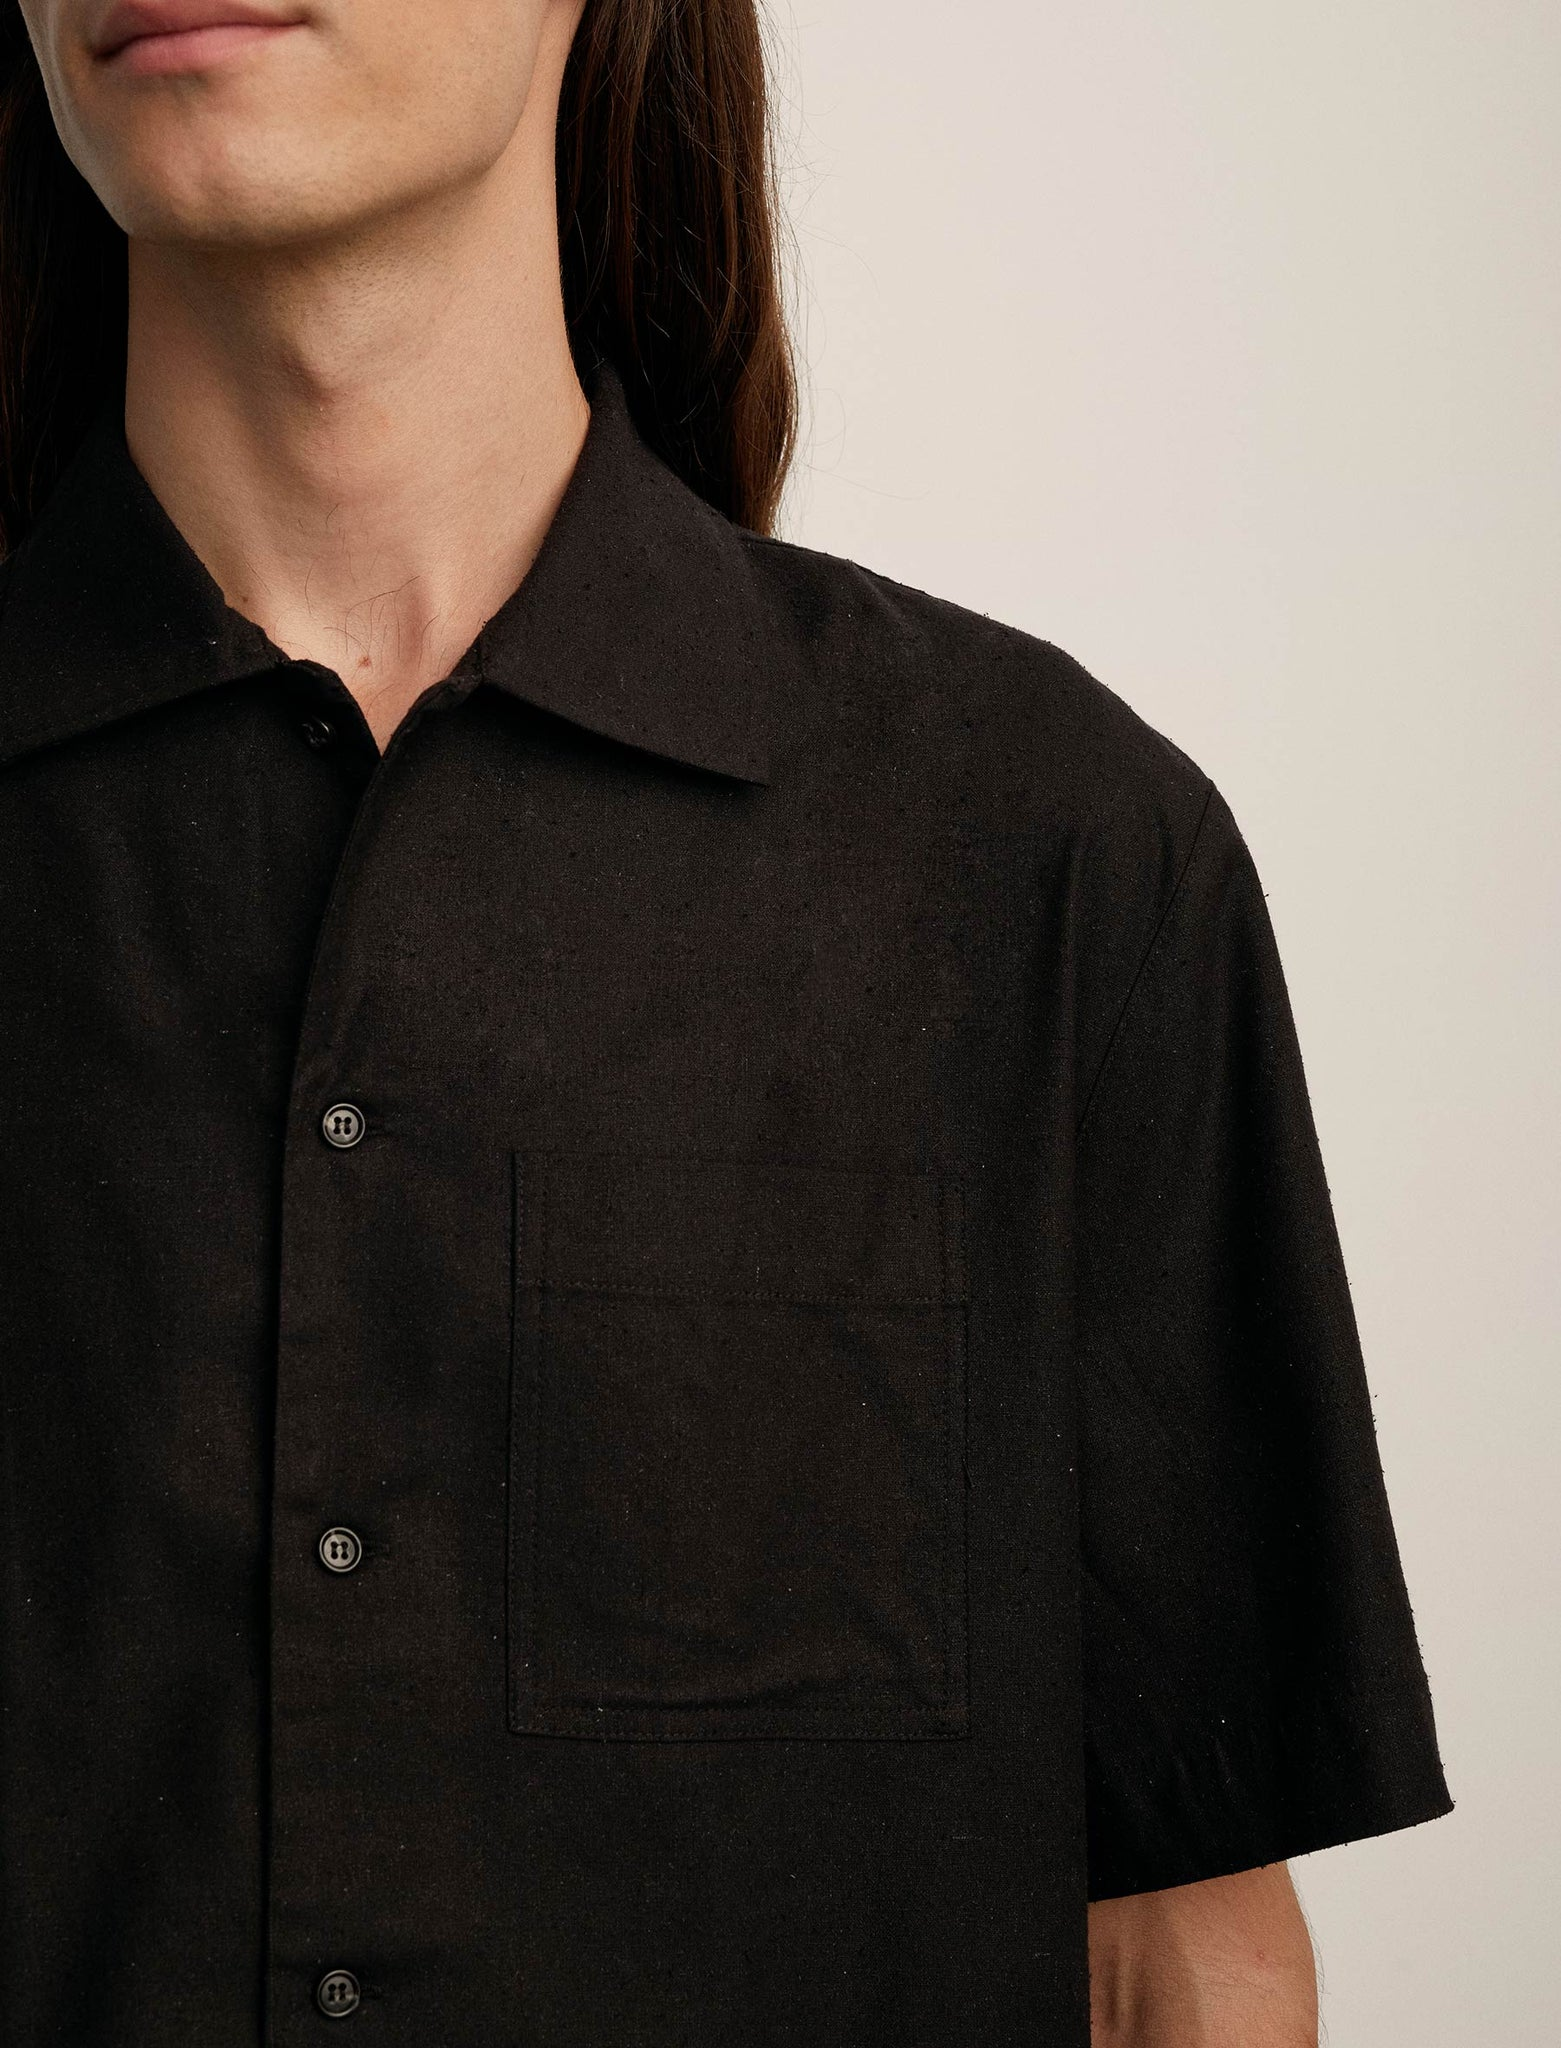 ANOTHER Shirt 2.0, Black